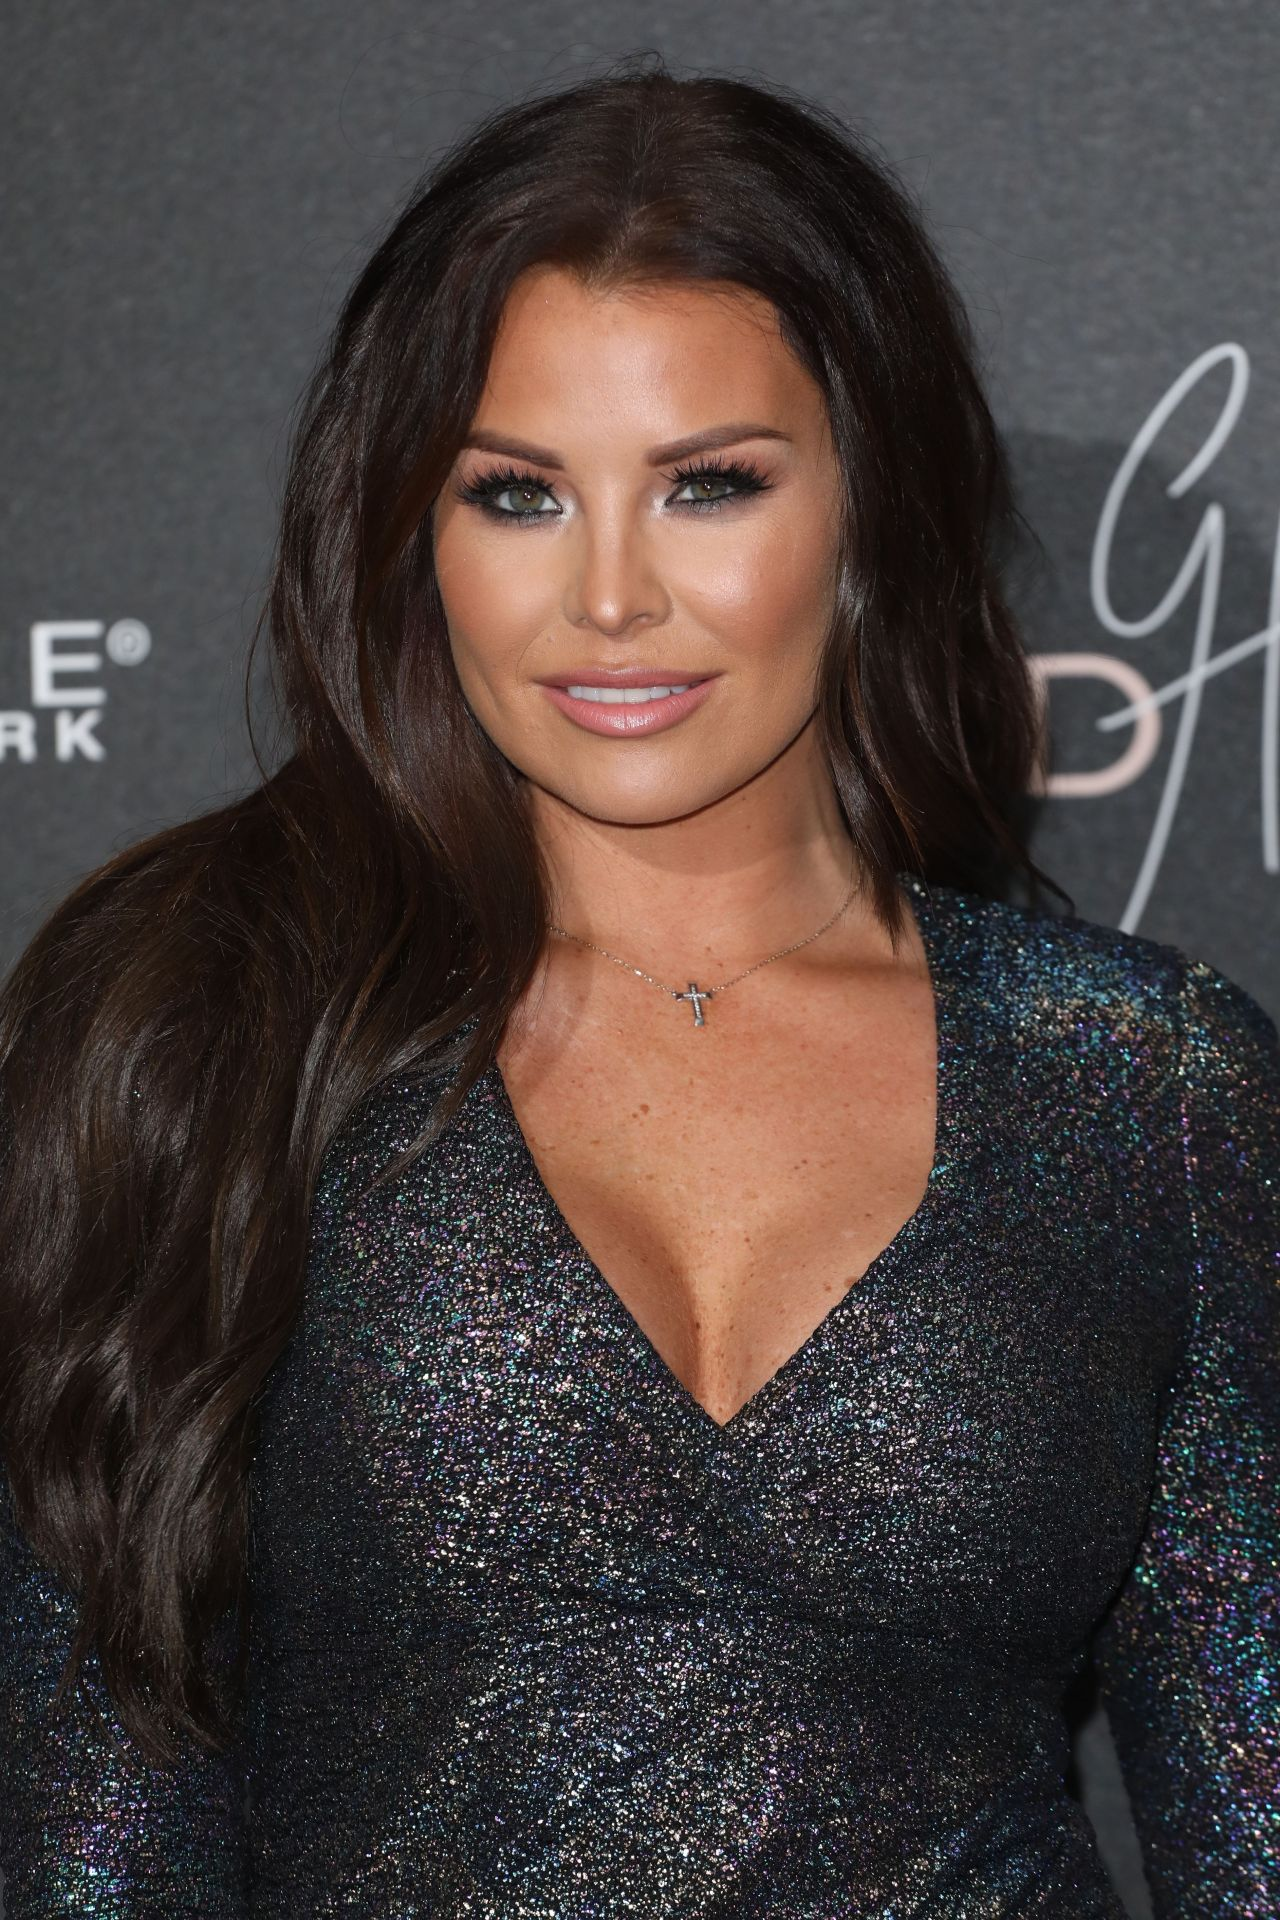 Pics Jessica Wright naked (33 photos), Topless, Hot, Selfie, underwear 2019